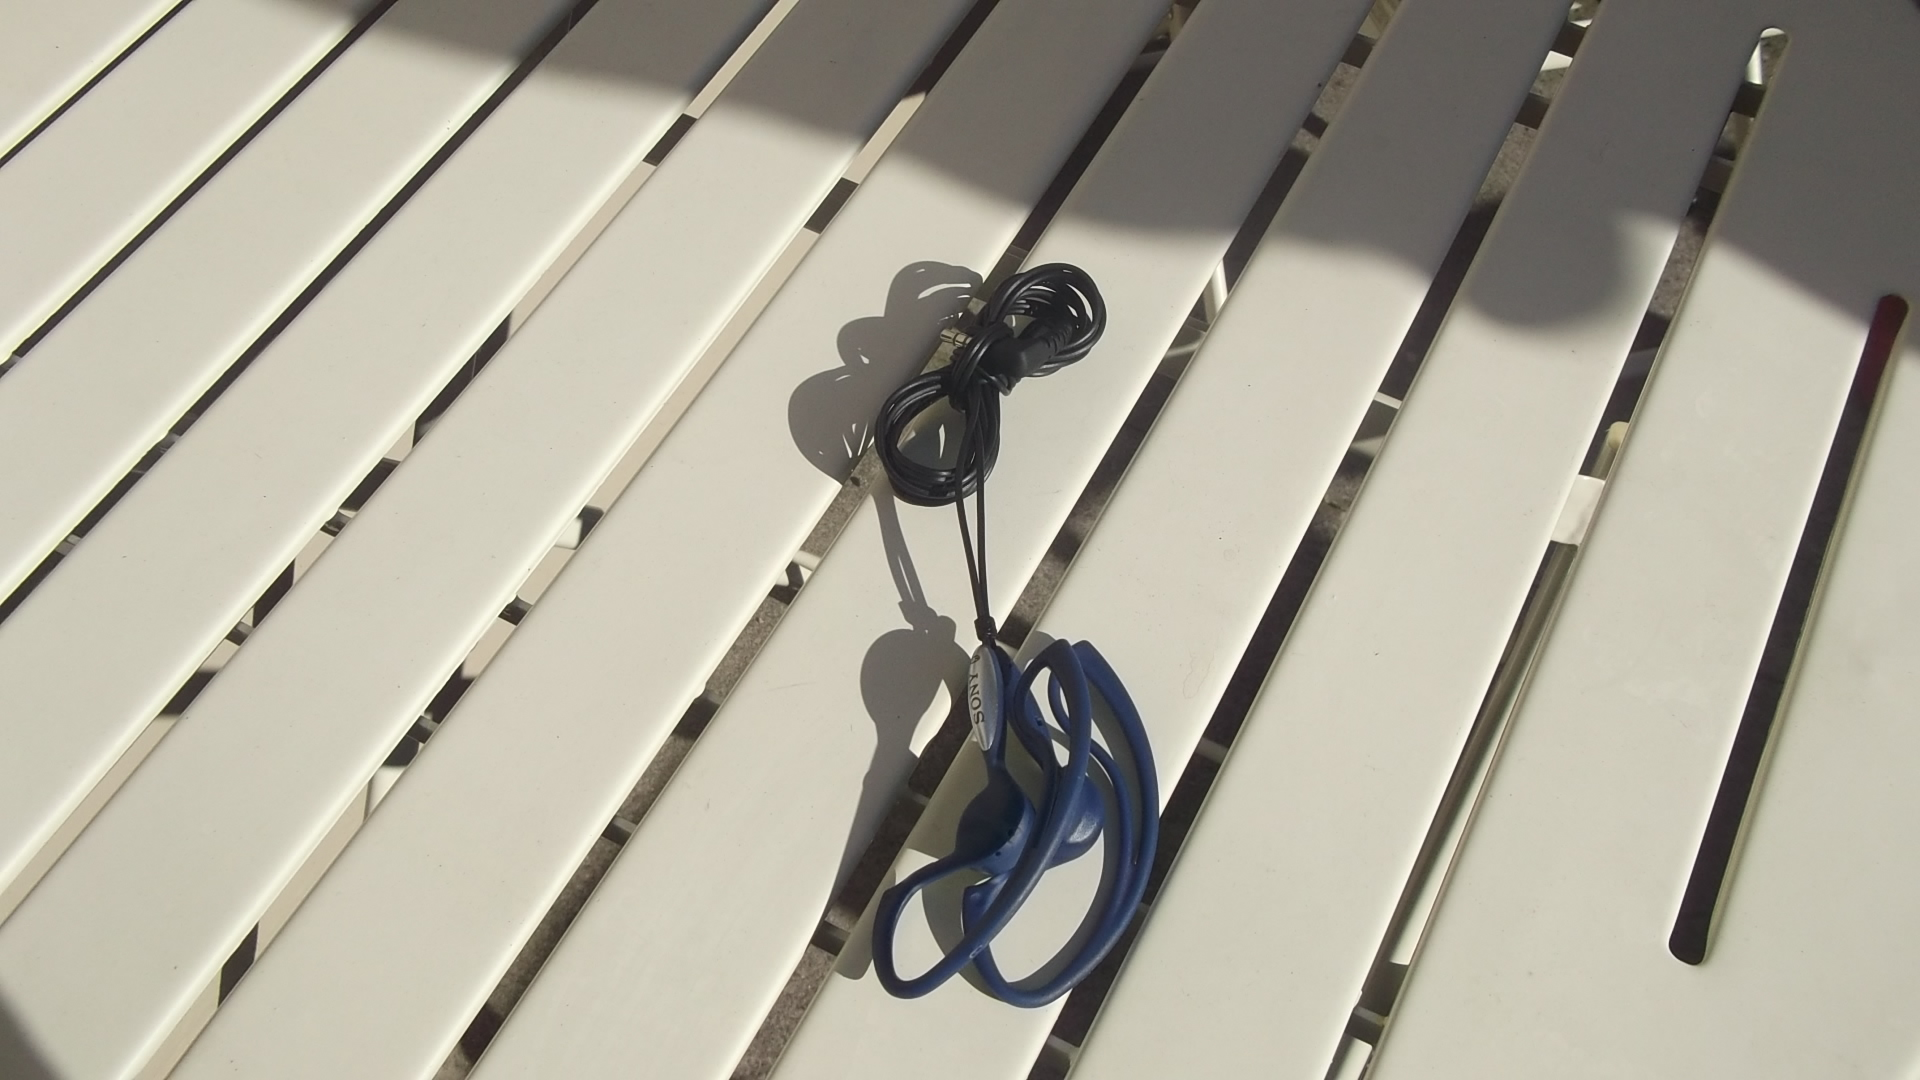 Easiest and fastest way to have untangled headphones!